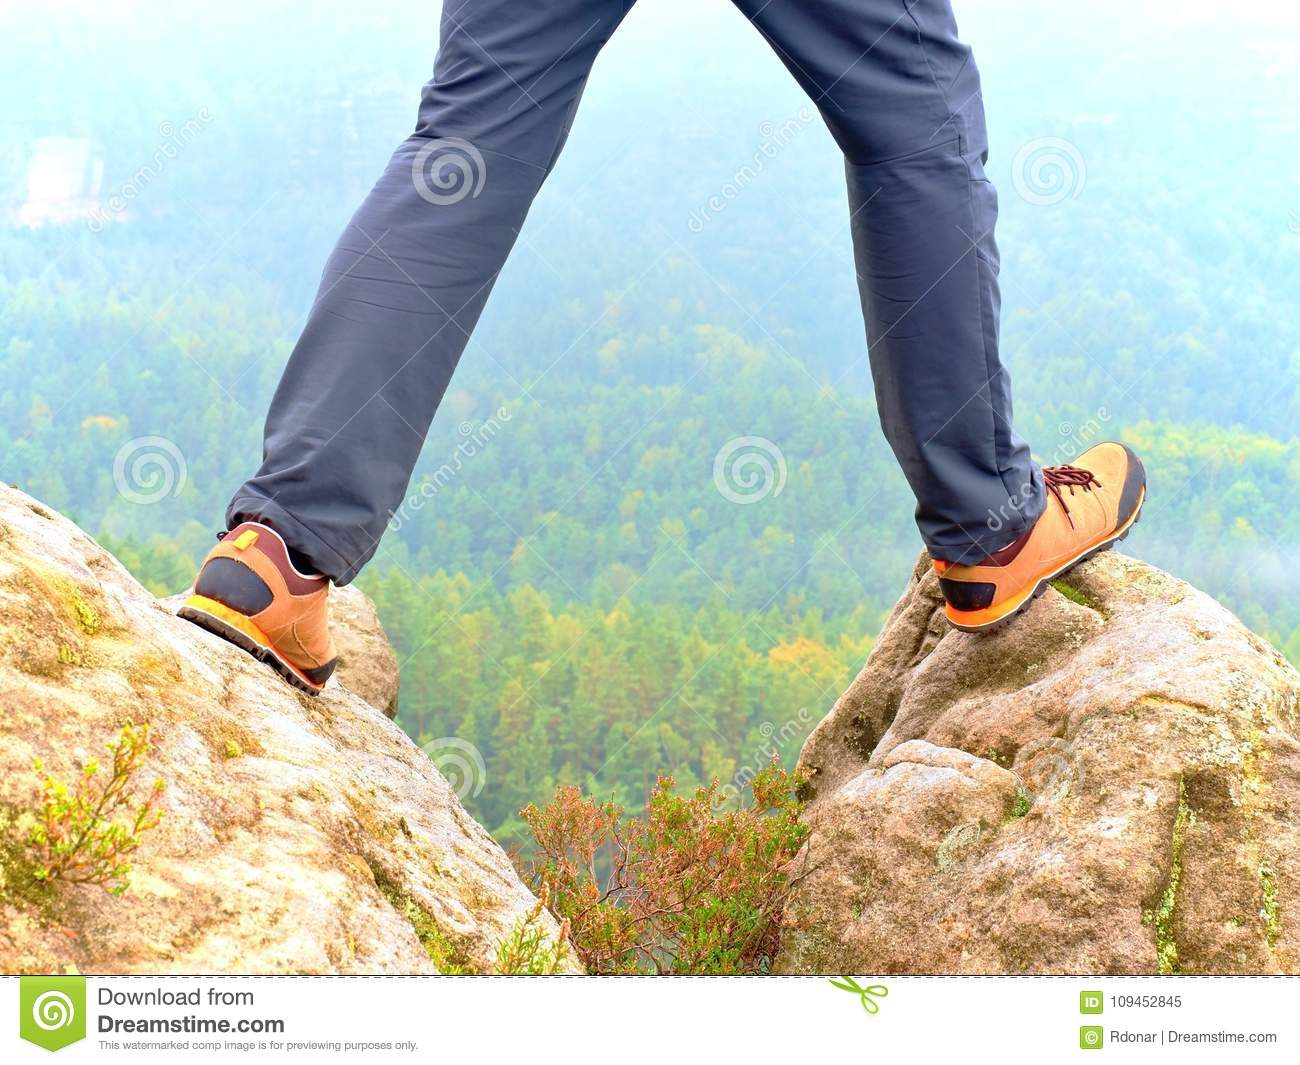 Hiker legs in comfortable trekking boots on rock. Man legs in light outdoor trousers, leather shoes